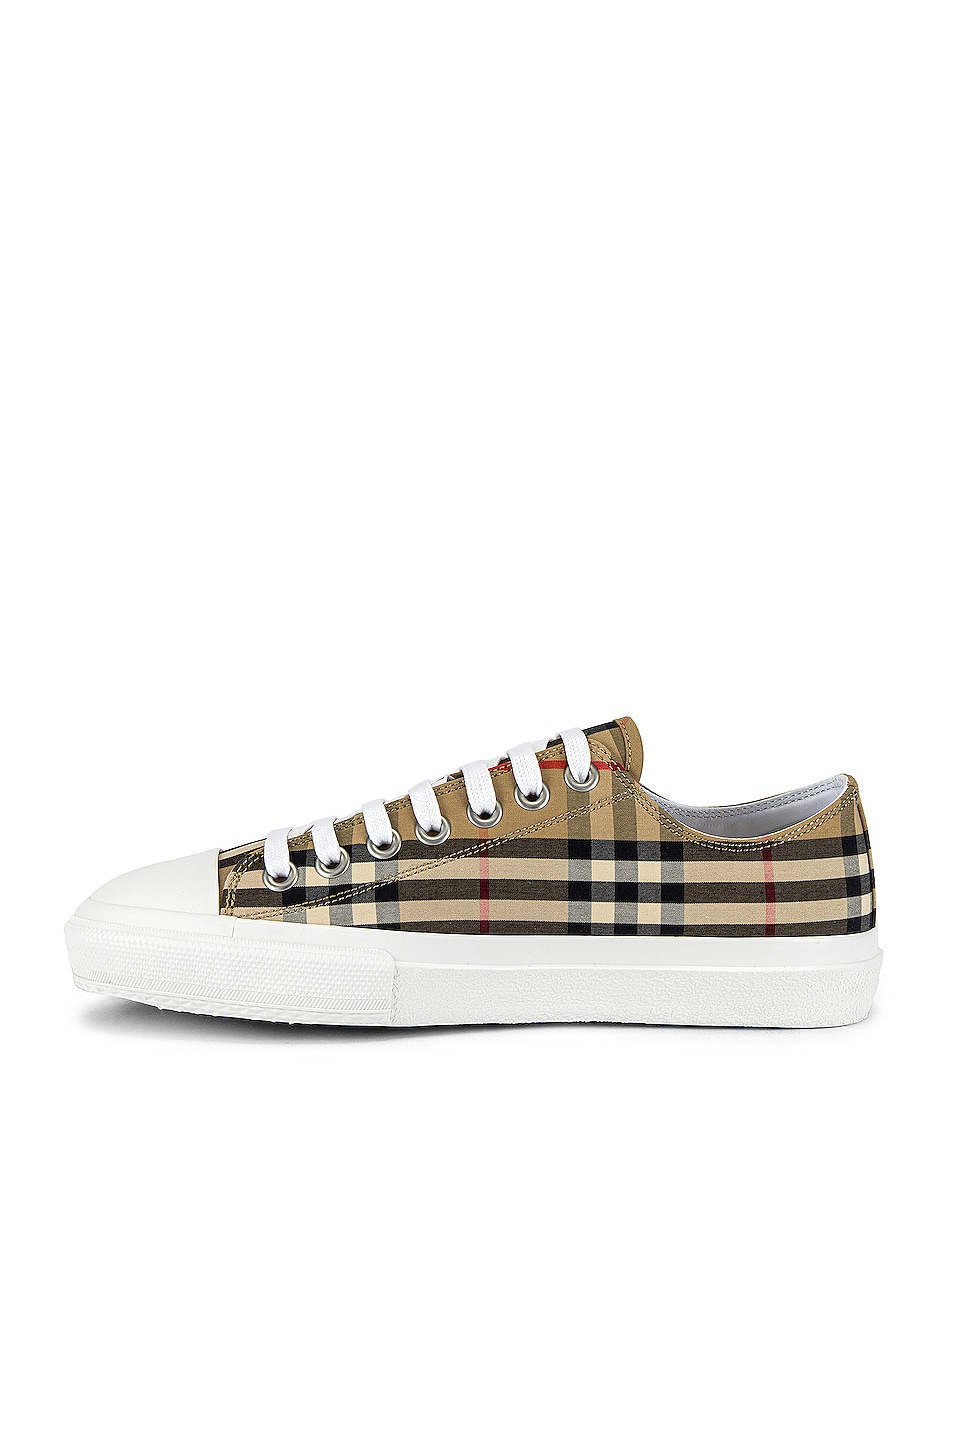 Image 5 of Burberry Larkhall Logo Low Top Sneaker in Archive Beige